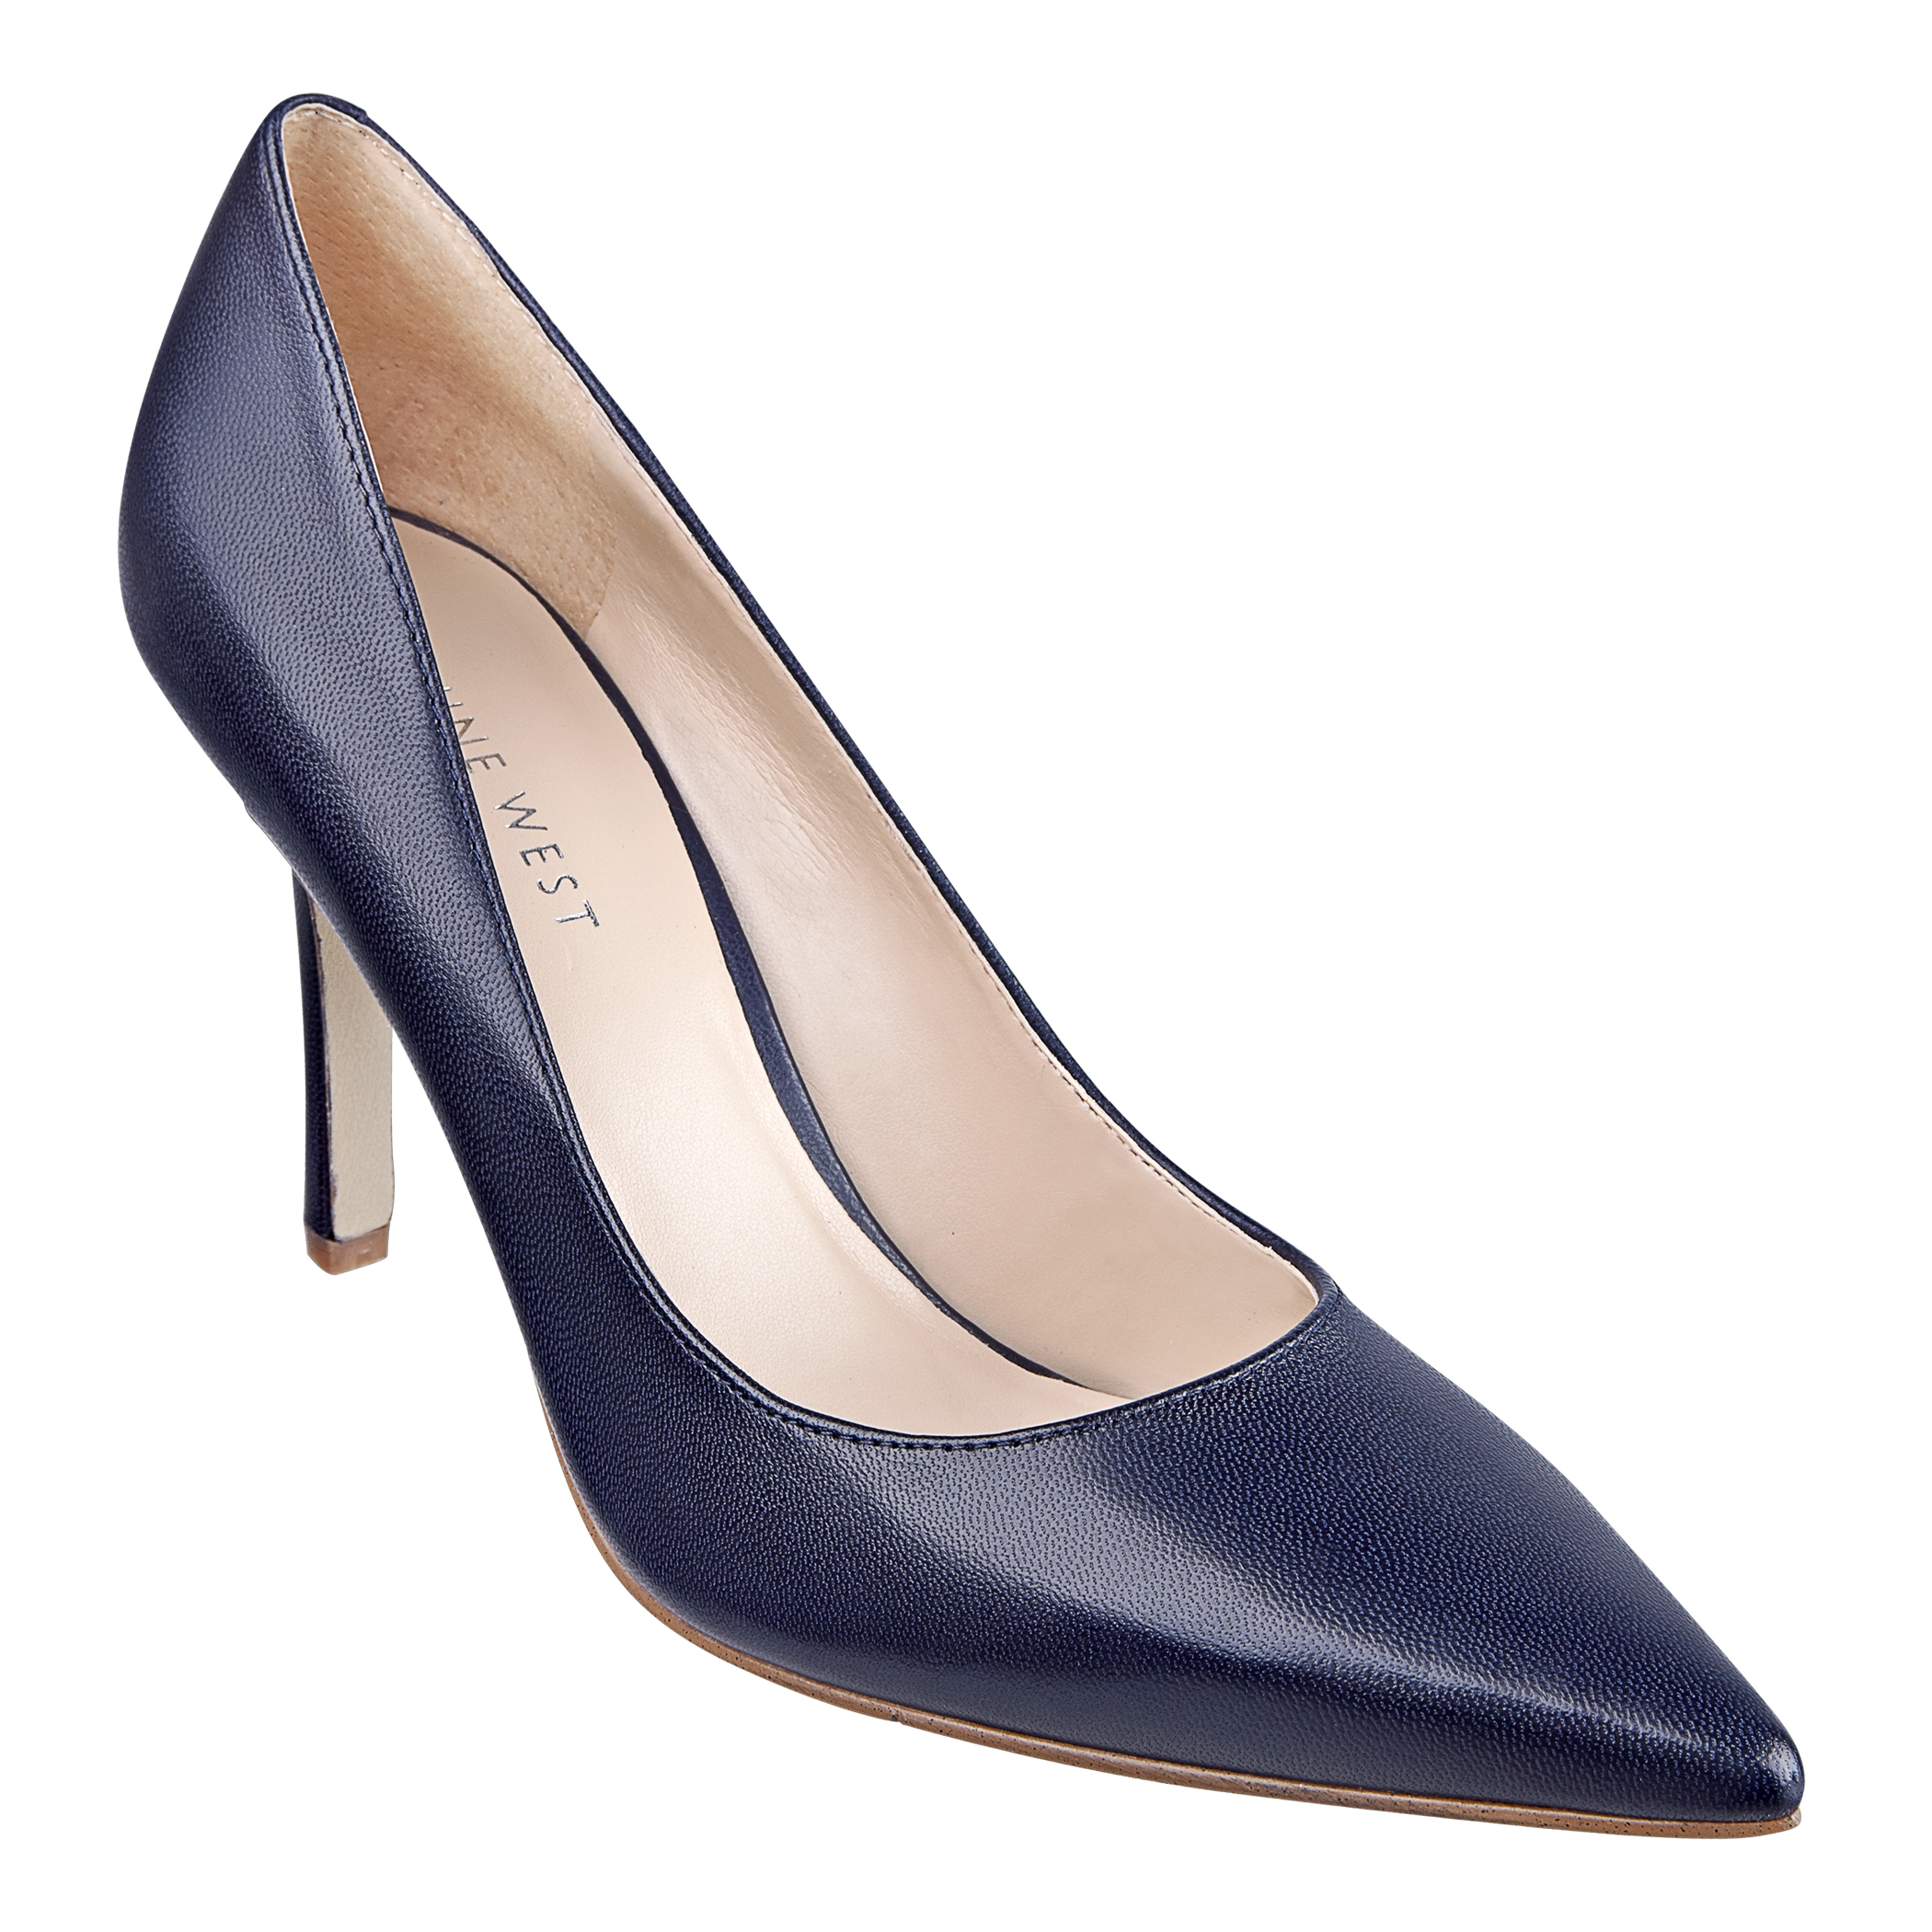 Shoes > All Pumps > MARTINA HIGH-HEEL PUMPS  - POINTY TOE PUMPS